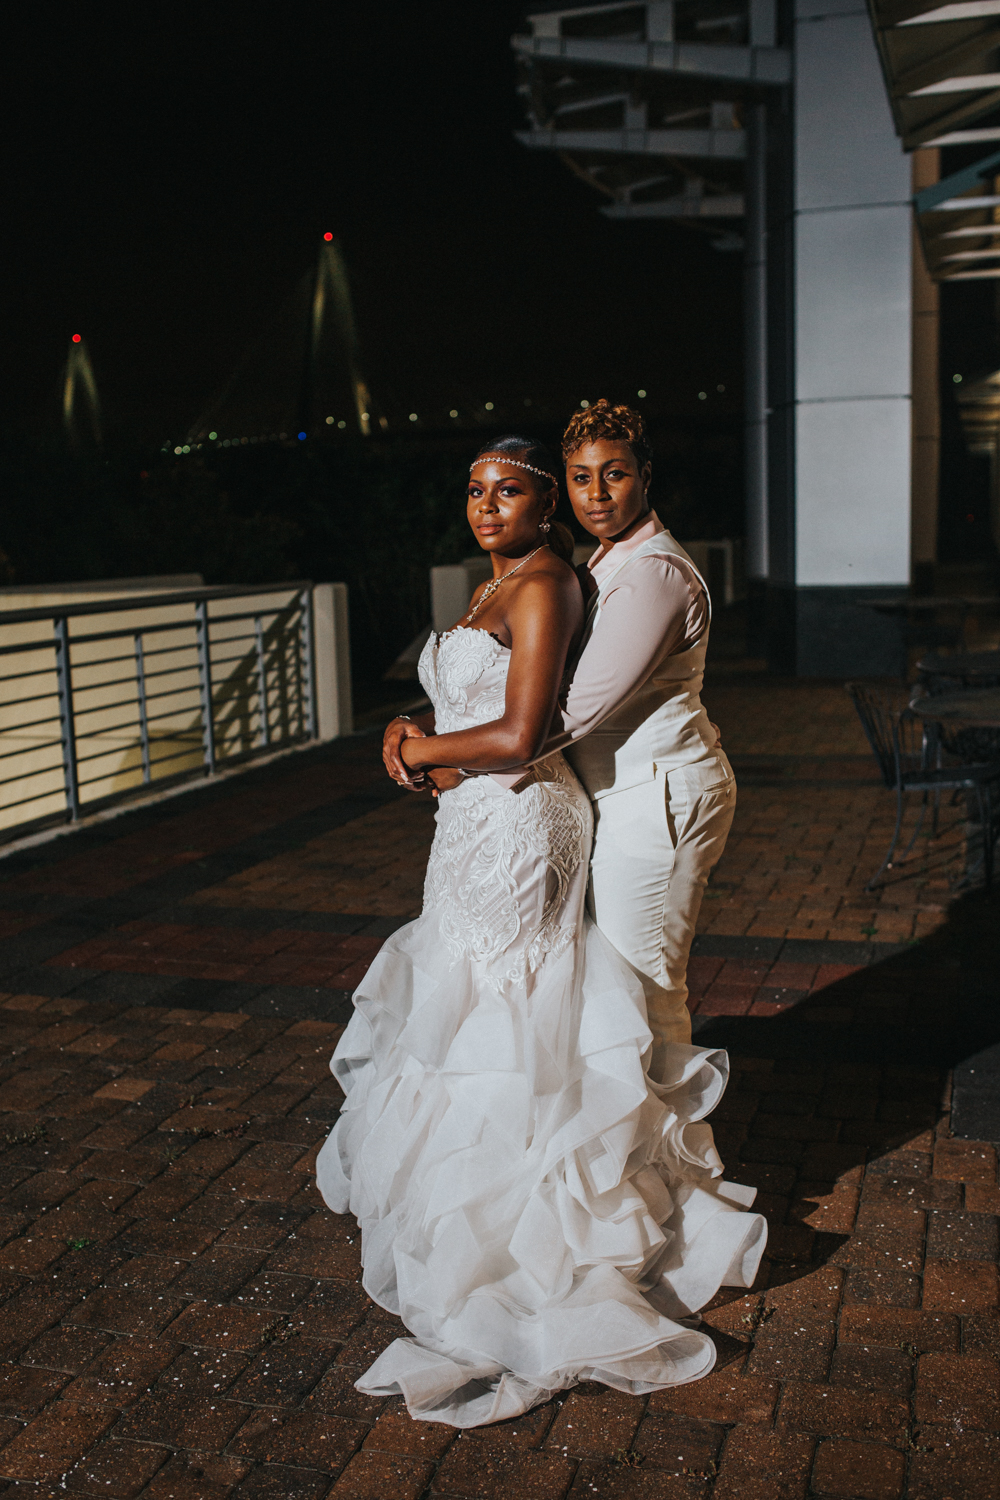 Harborside East Charleston LGBTQ Friendly Same Sex Wedding-16.jpg